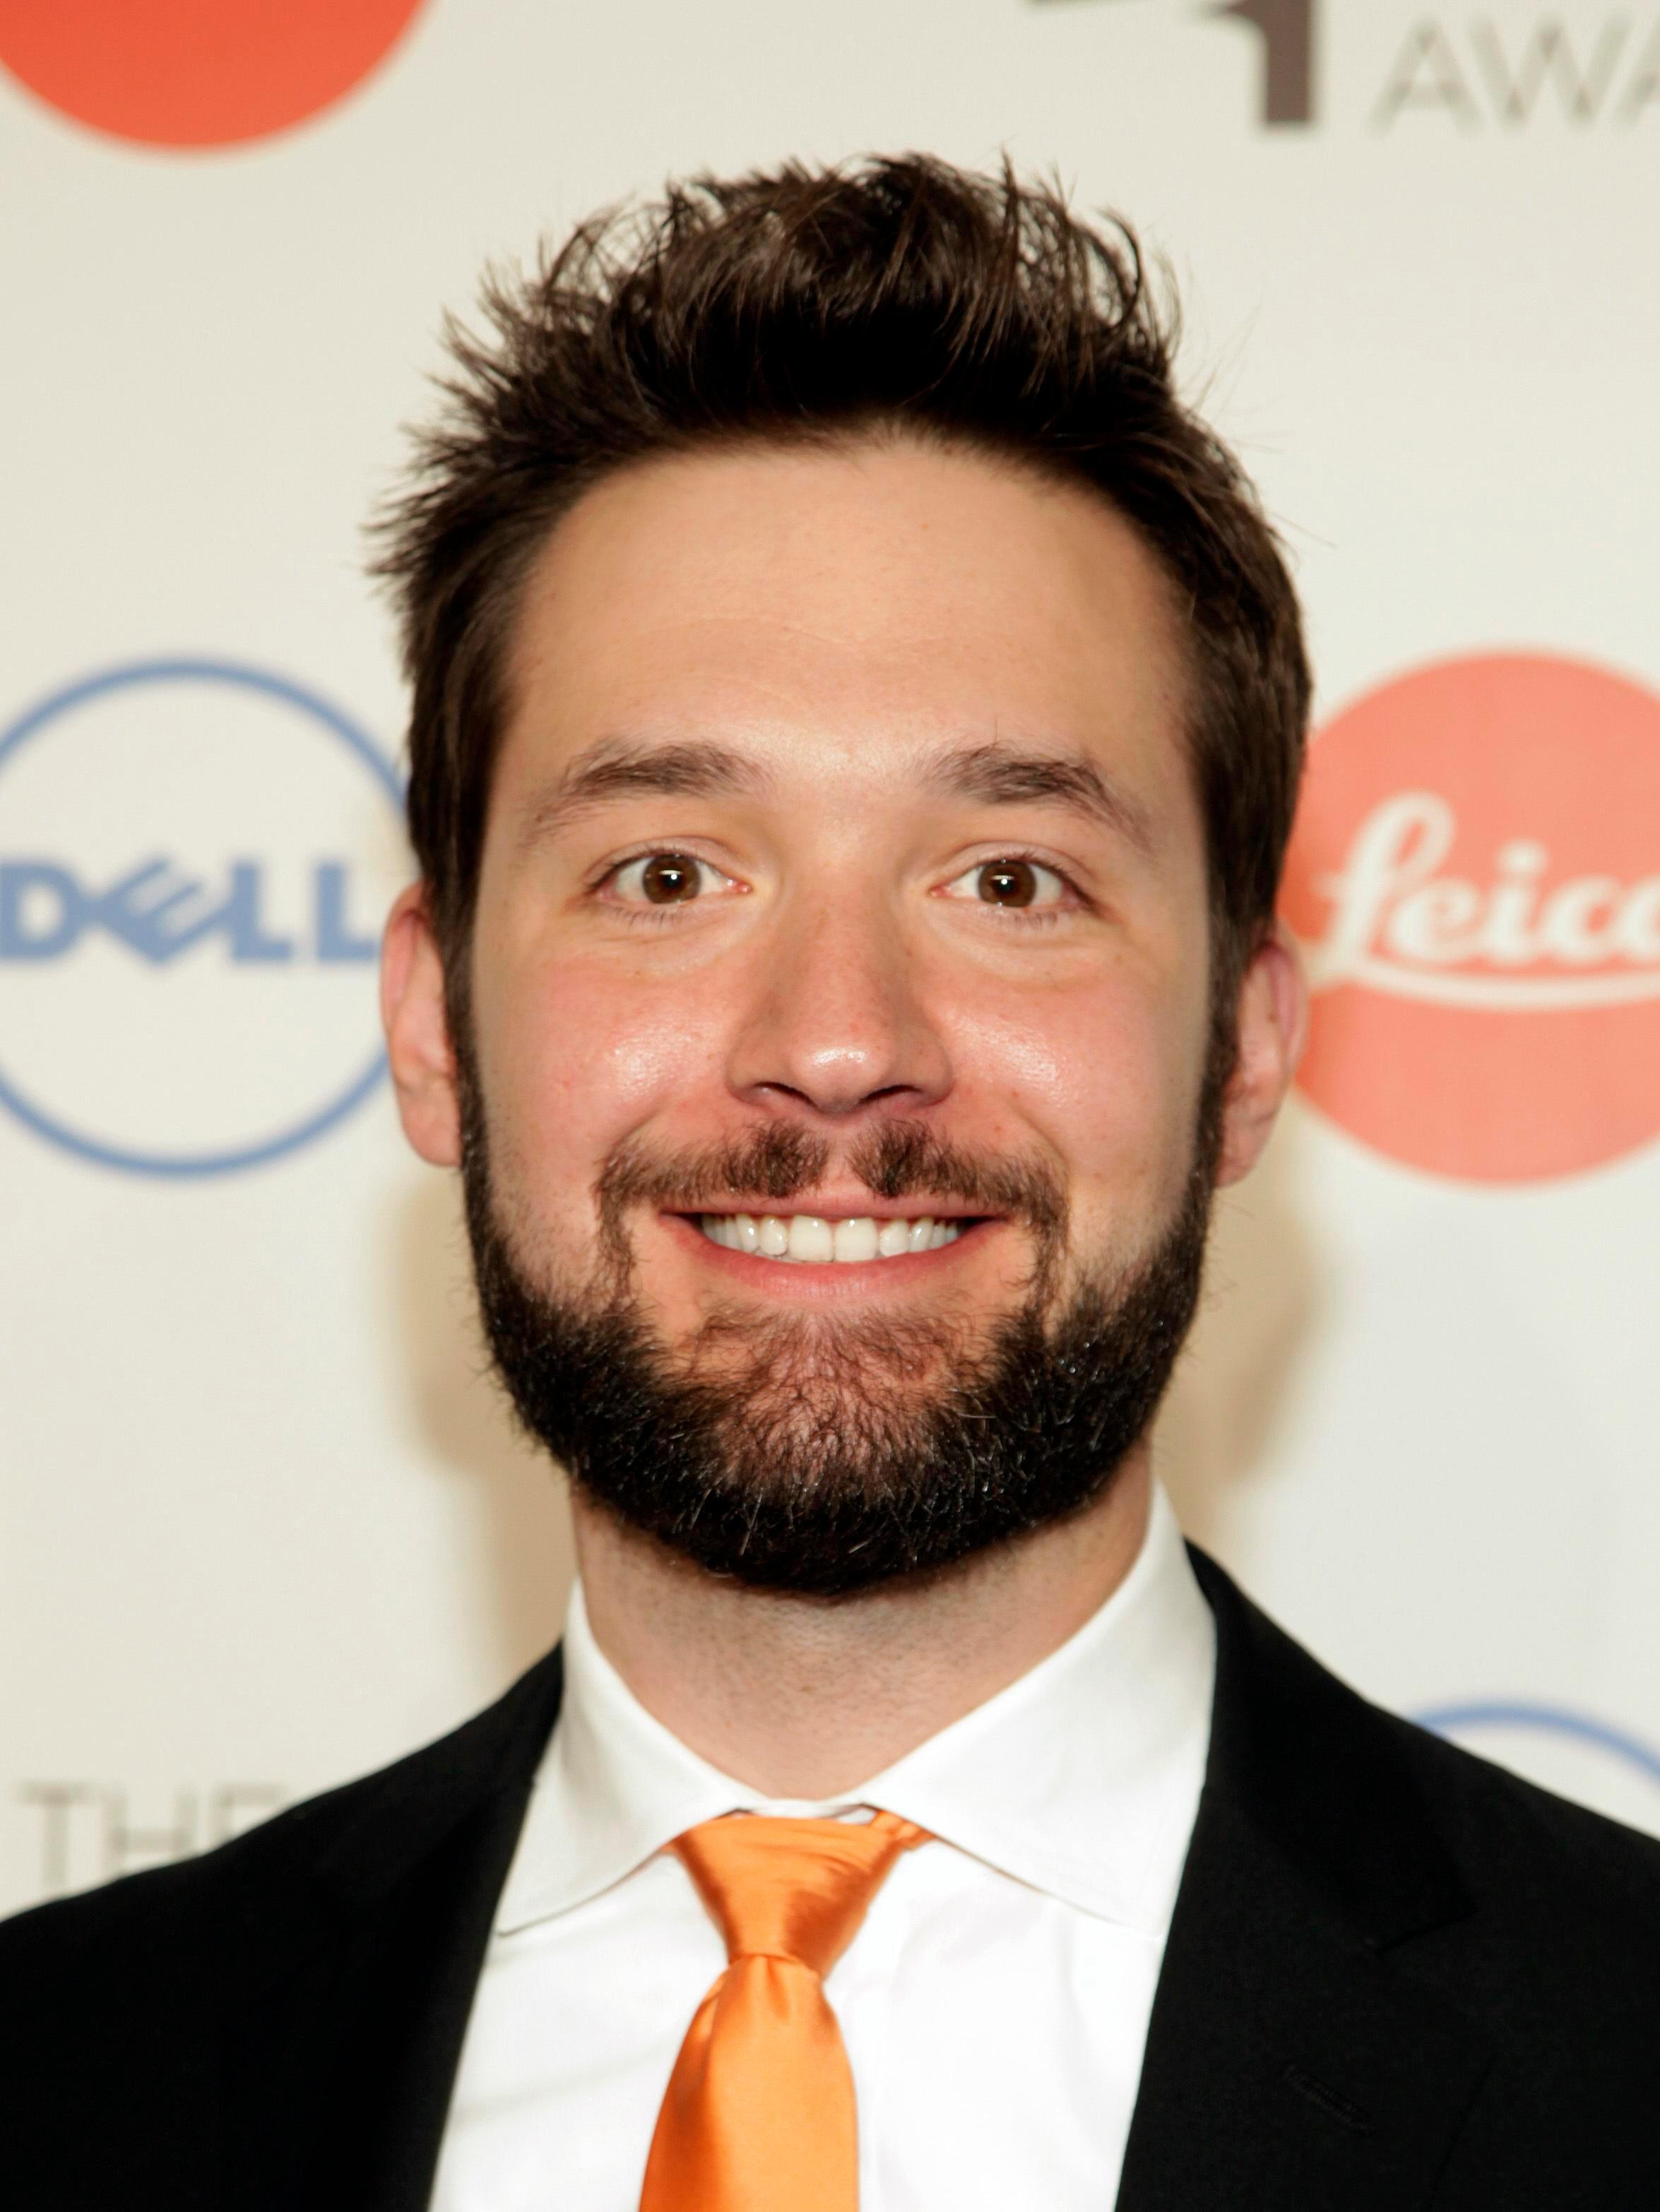 Who is Alexis Ohanian? Reddit co-founder who is married to tennis ace Serena Williams